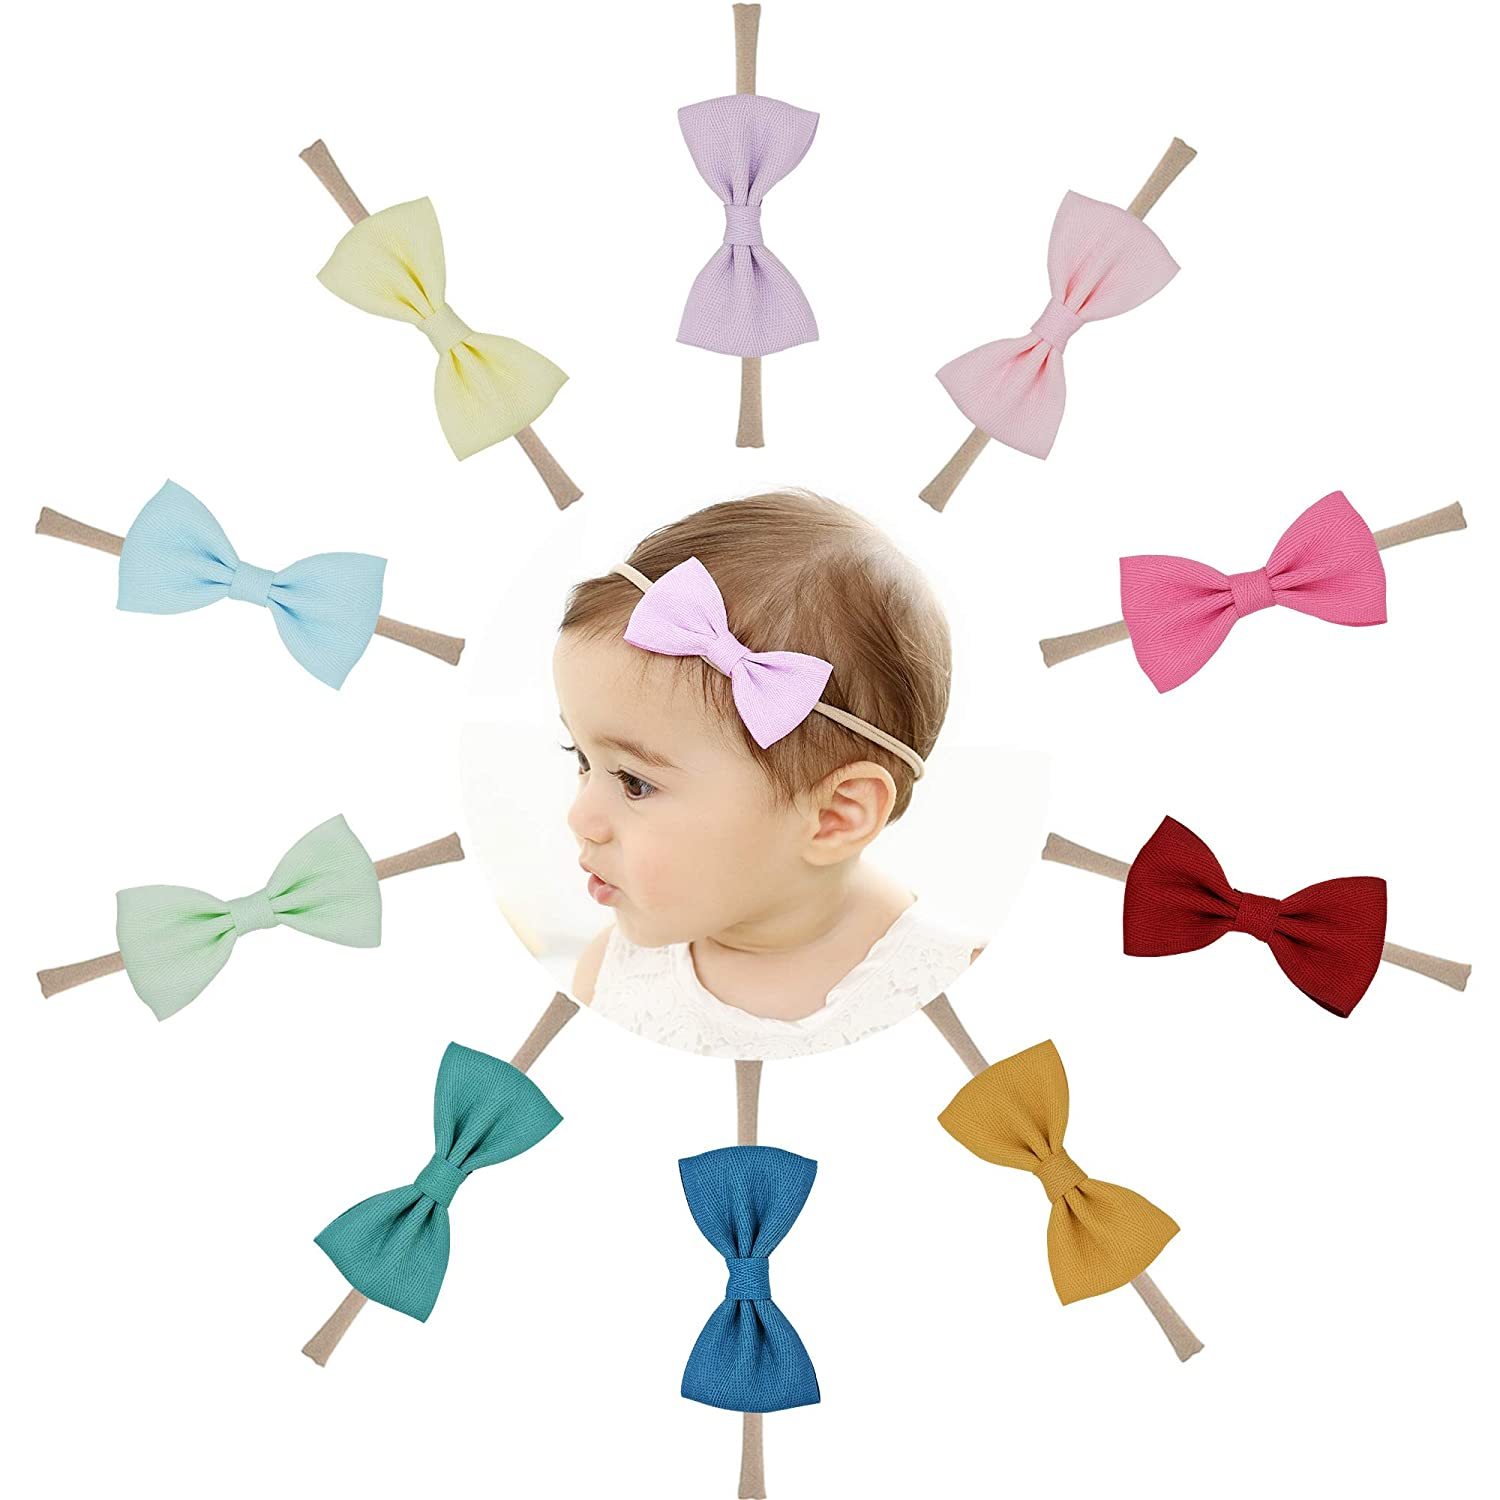 Prohouse 10PCS Baby Nylon Headbands Hairbands Hair Bow Elastics for Baby Girls Newborn Infant Toddlers Kids 729129326821